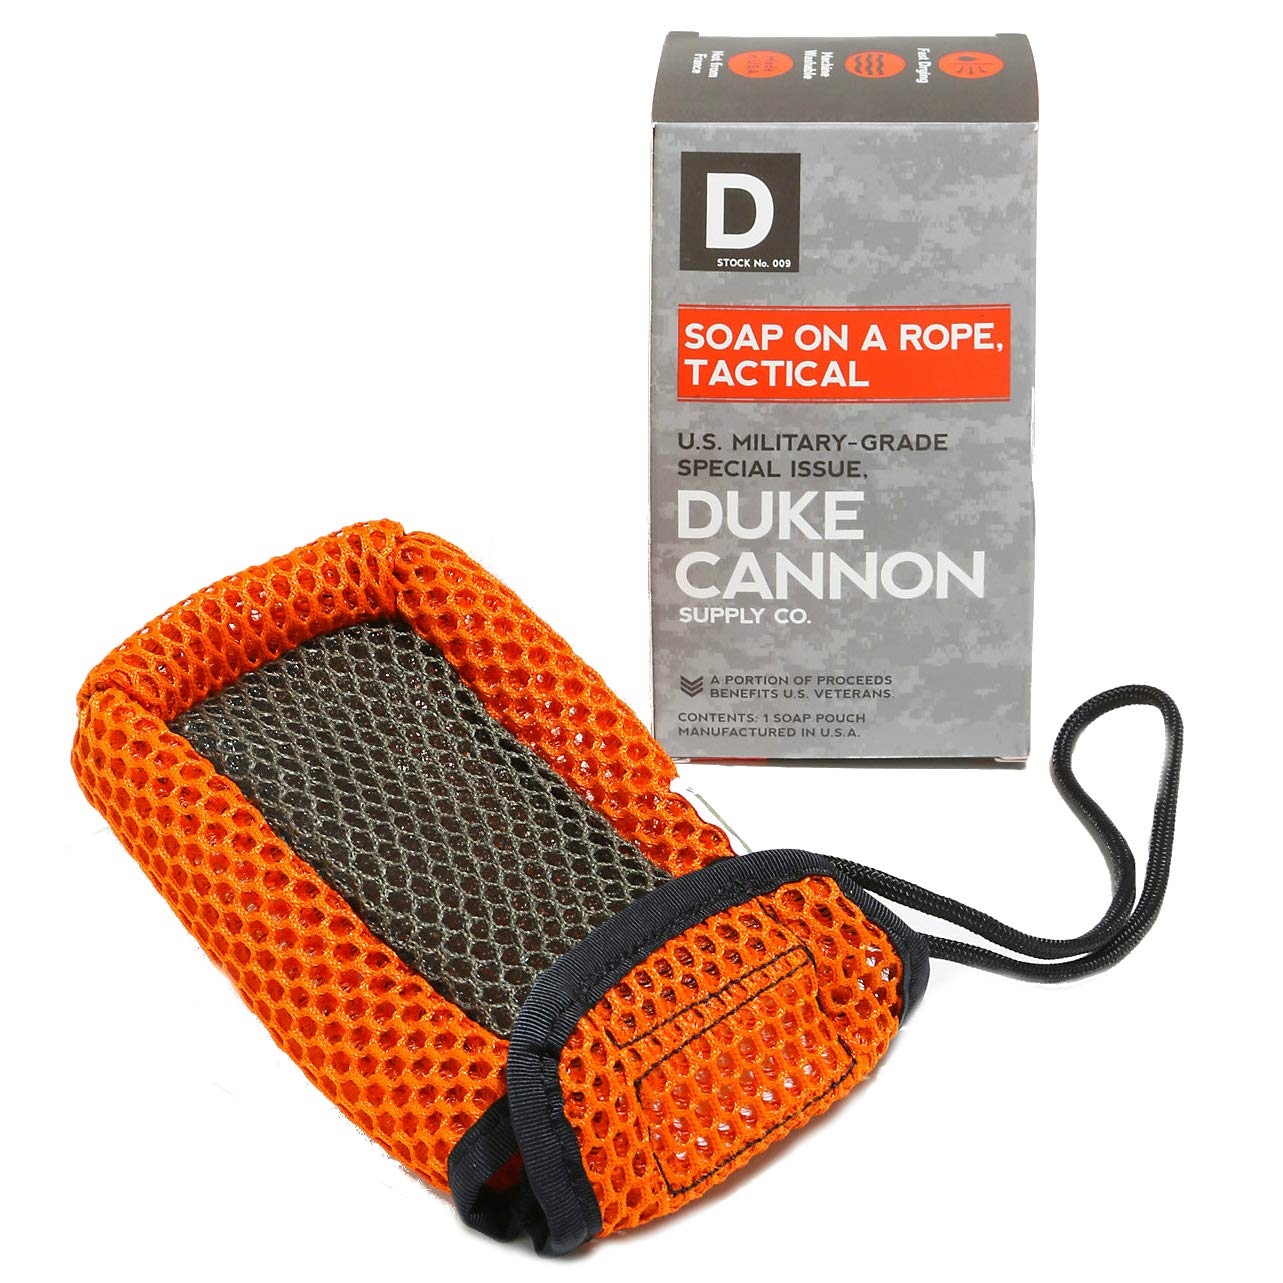 Duke Cannon Tactical Soap On a Rope Pouch TACTICAL6